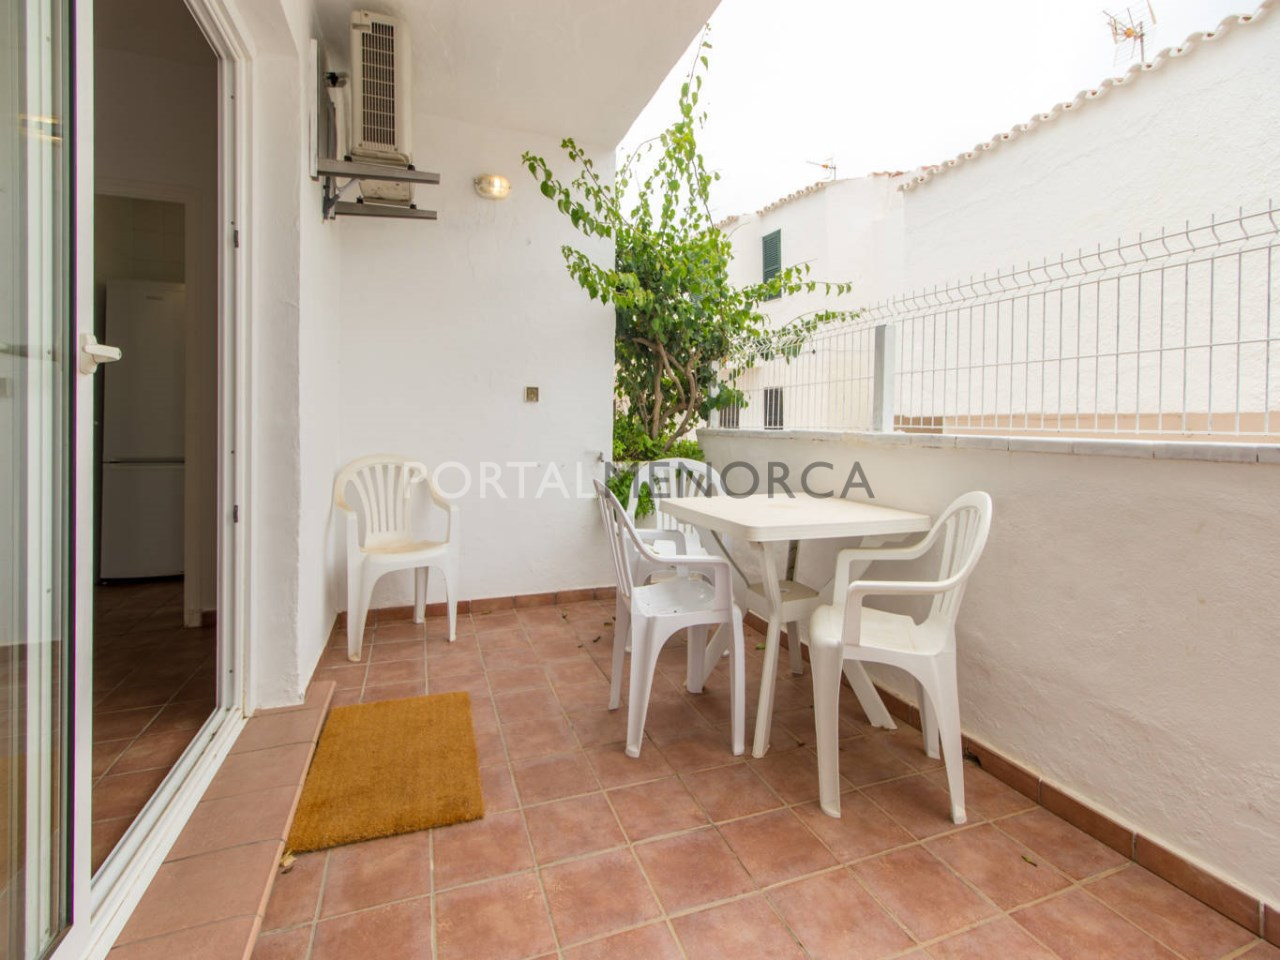 Apartment with terrace for sale in Cala Torret